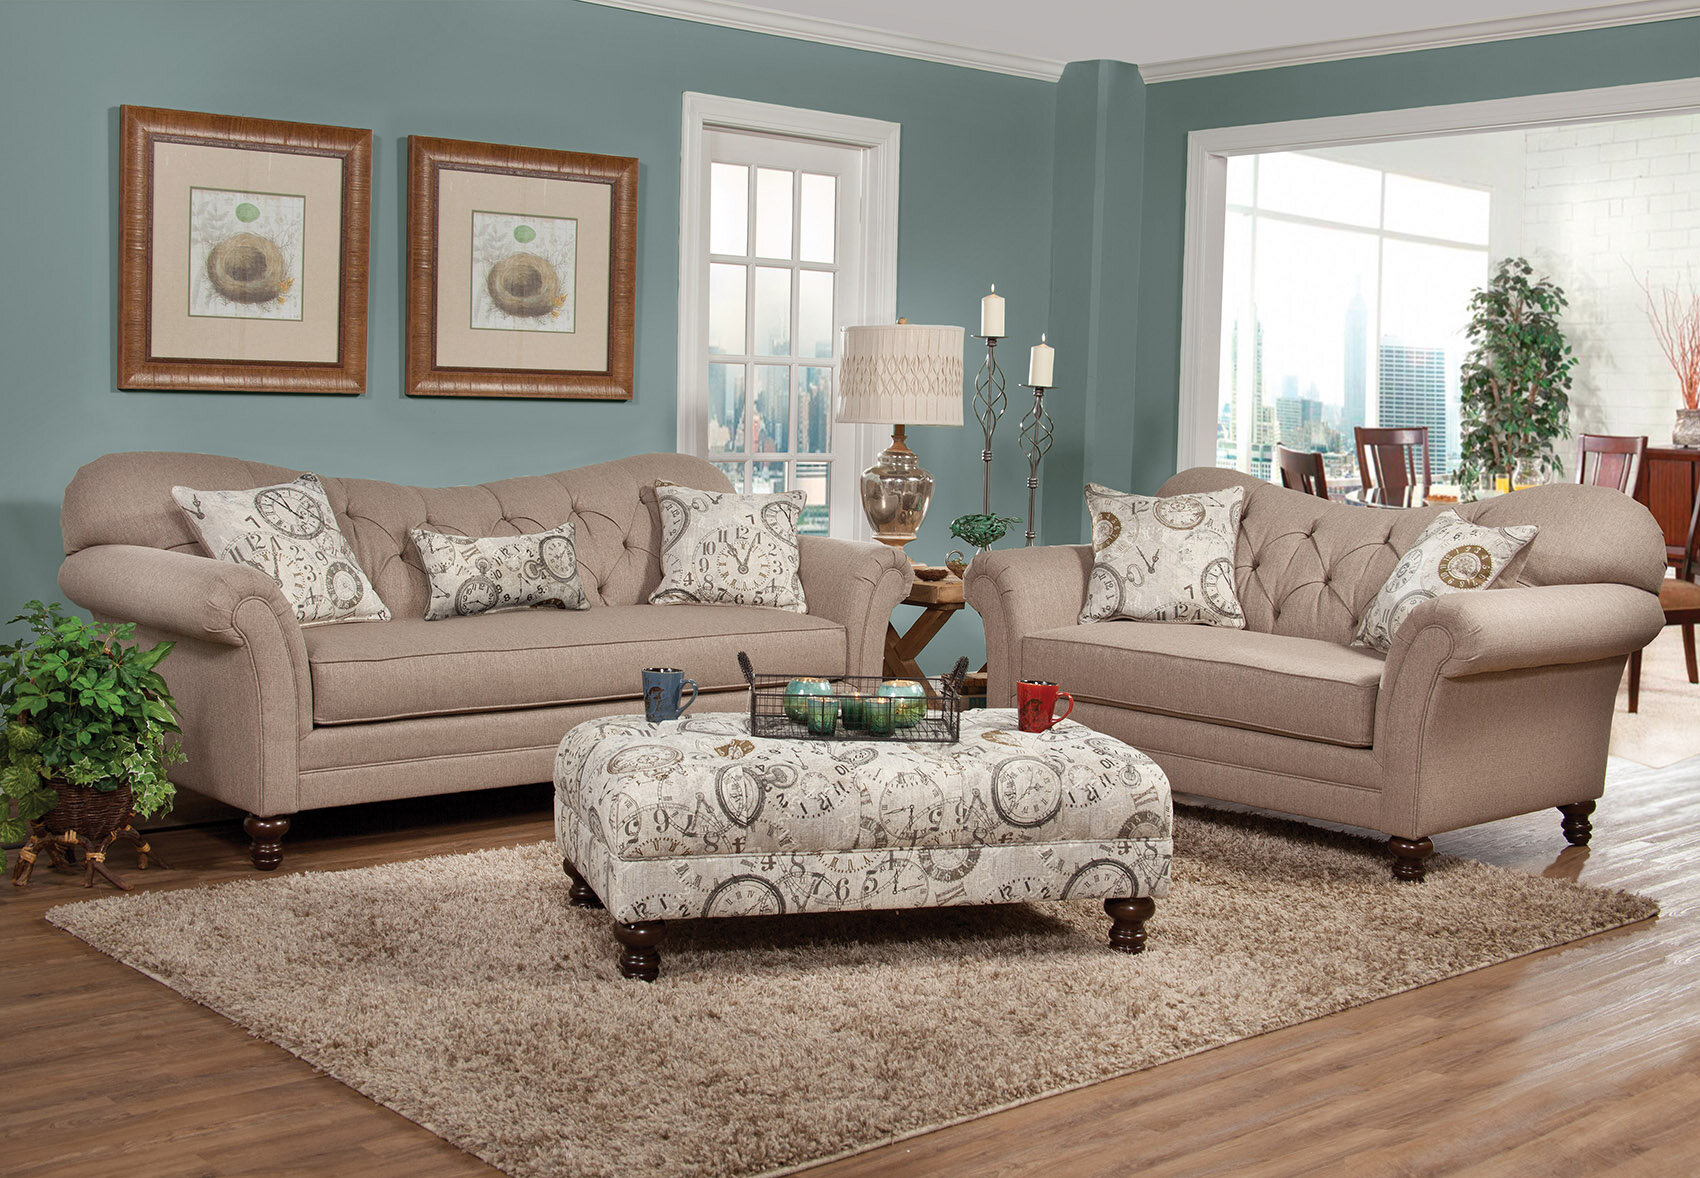 3 Seater Loveseat Cottage Country Living Room Sets You Ll Love In 2021 Wayfair